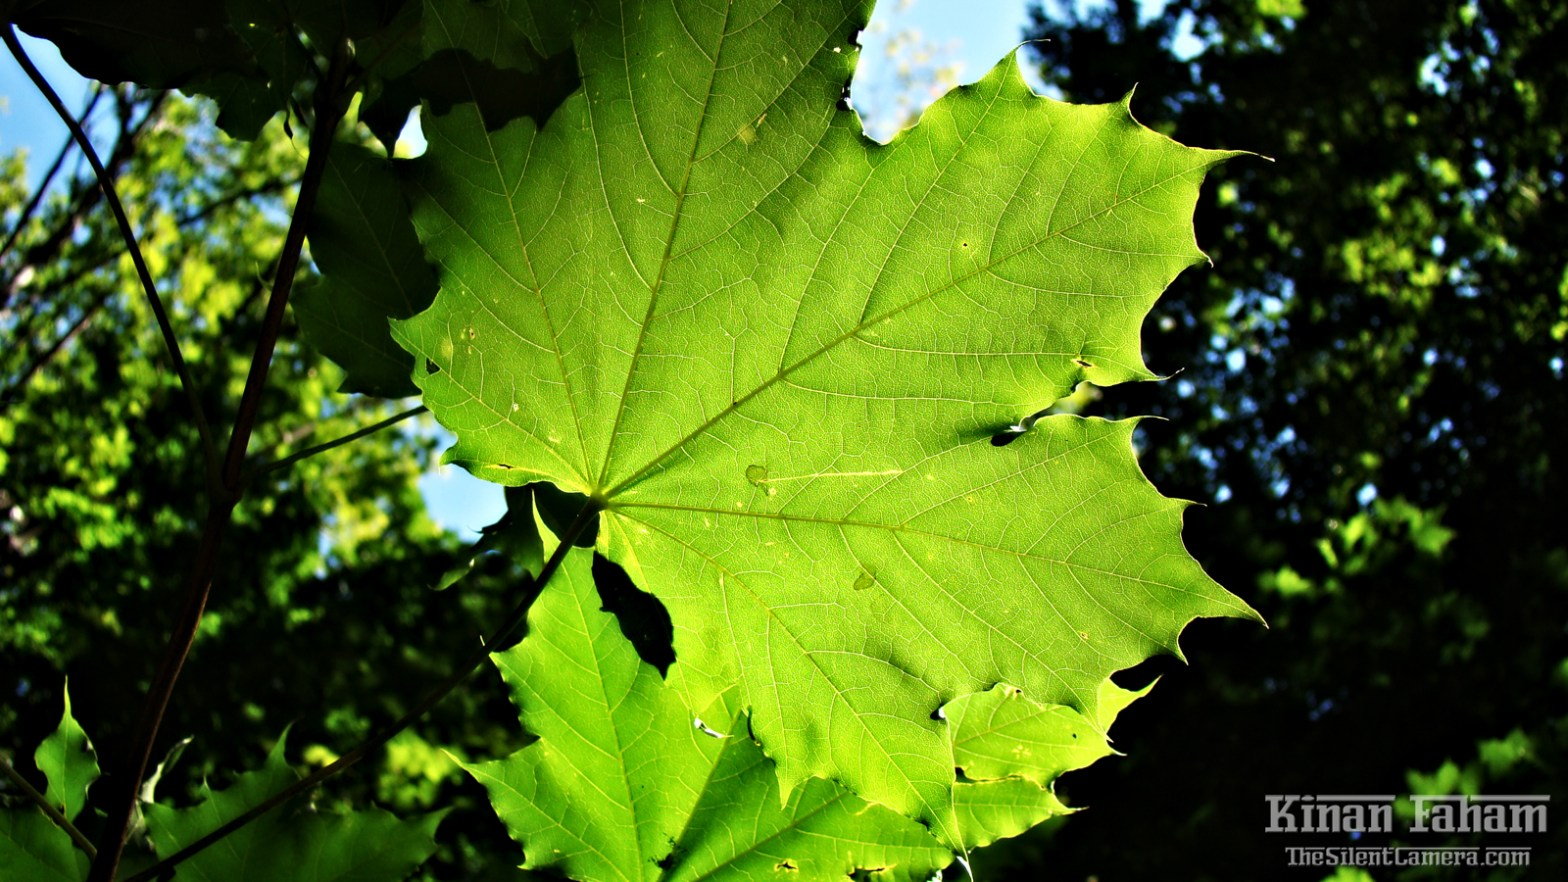 Green Leaf with Other leaves leaving their shadows. Seen on Tunxis Trail in Barkhamsted, CT